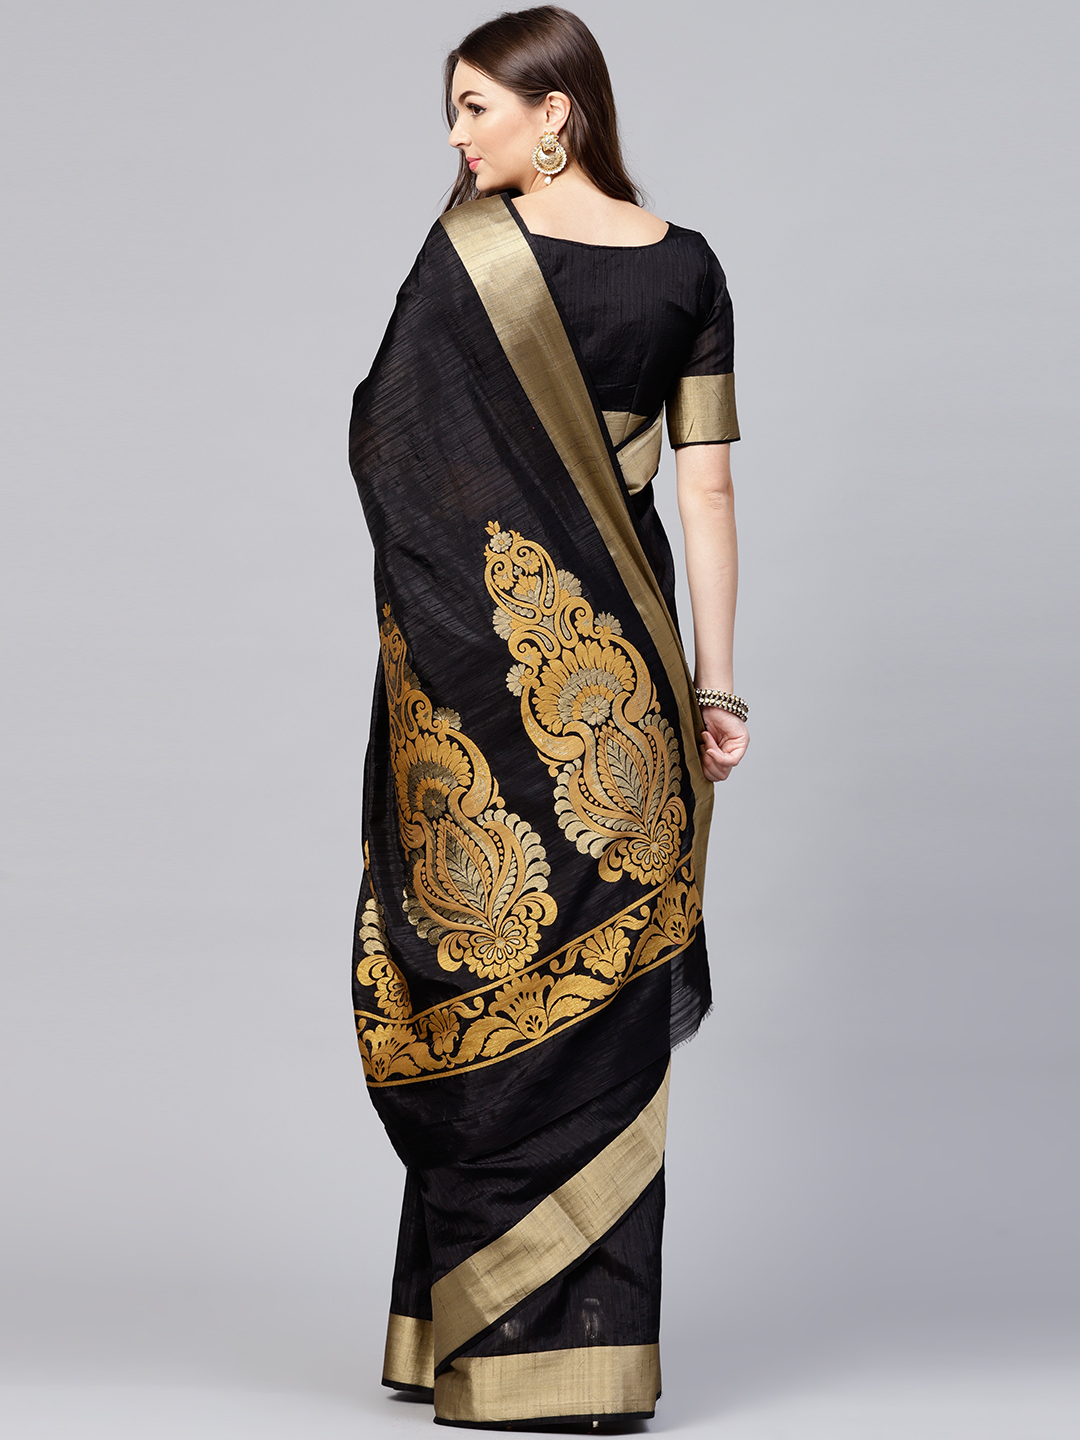 15-sarees-for-farewell-Black-Solid-Kanjeevaram-Saree